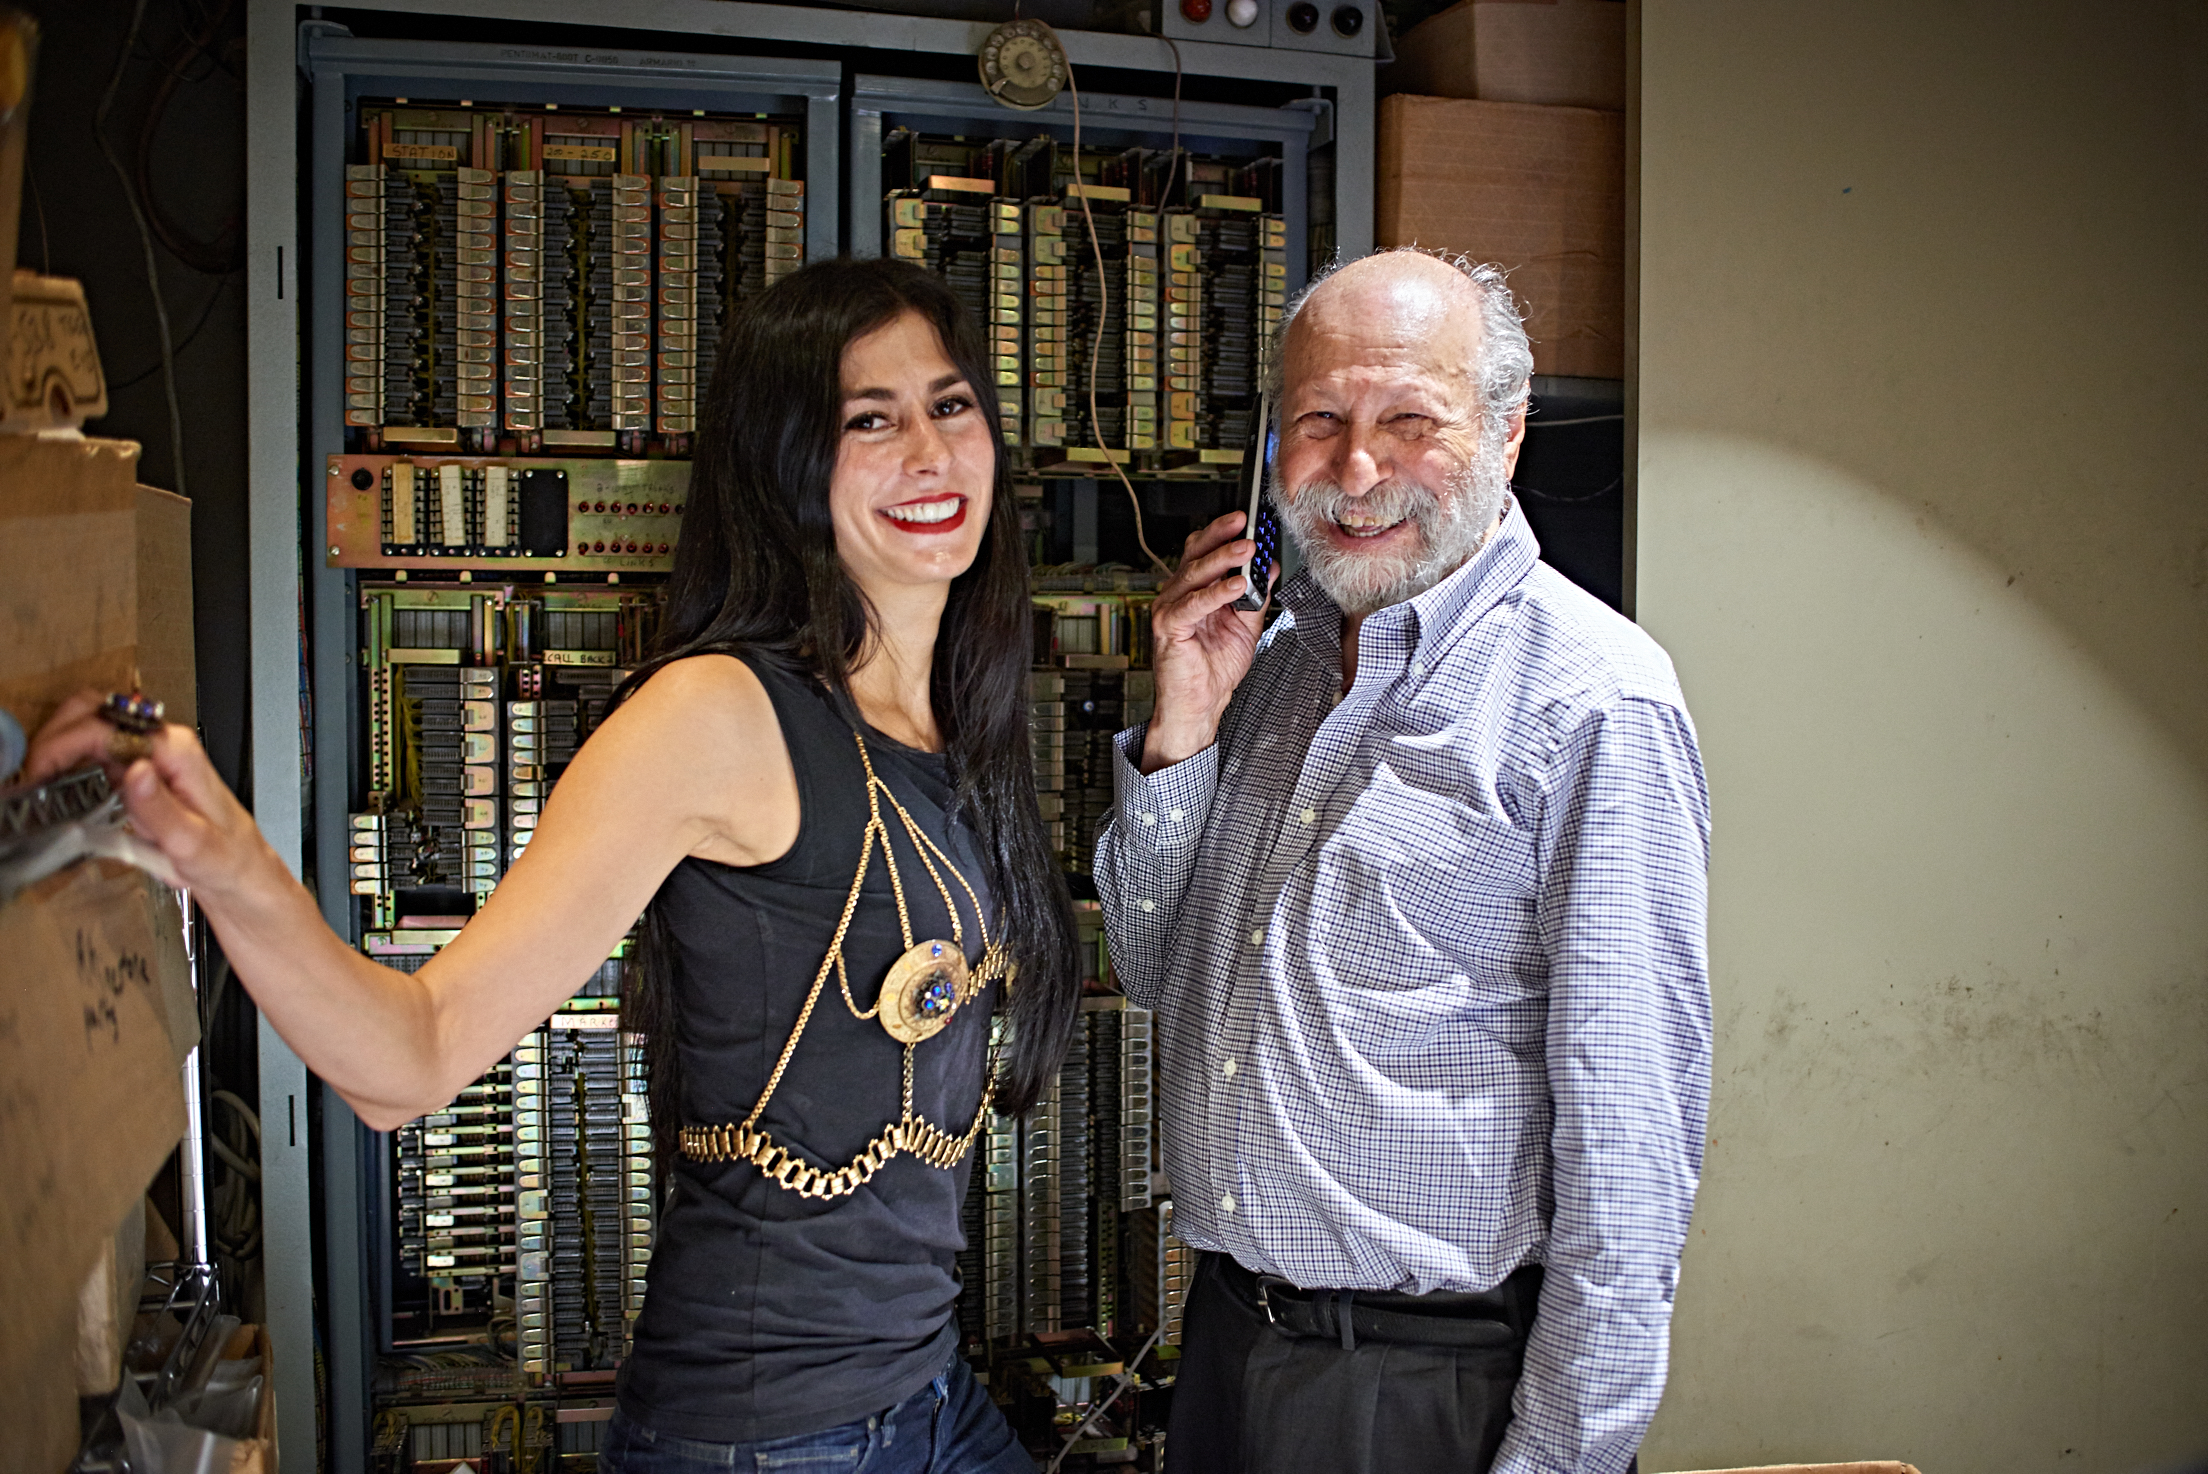 Elyse and Carl in front of the original telephone system when Carl first moved into the building in 1950. Although no longer in use, it is still intact.